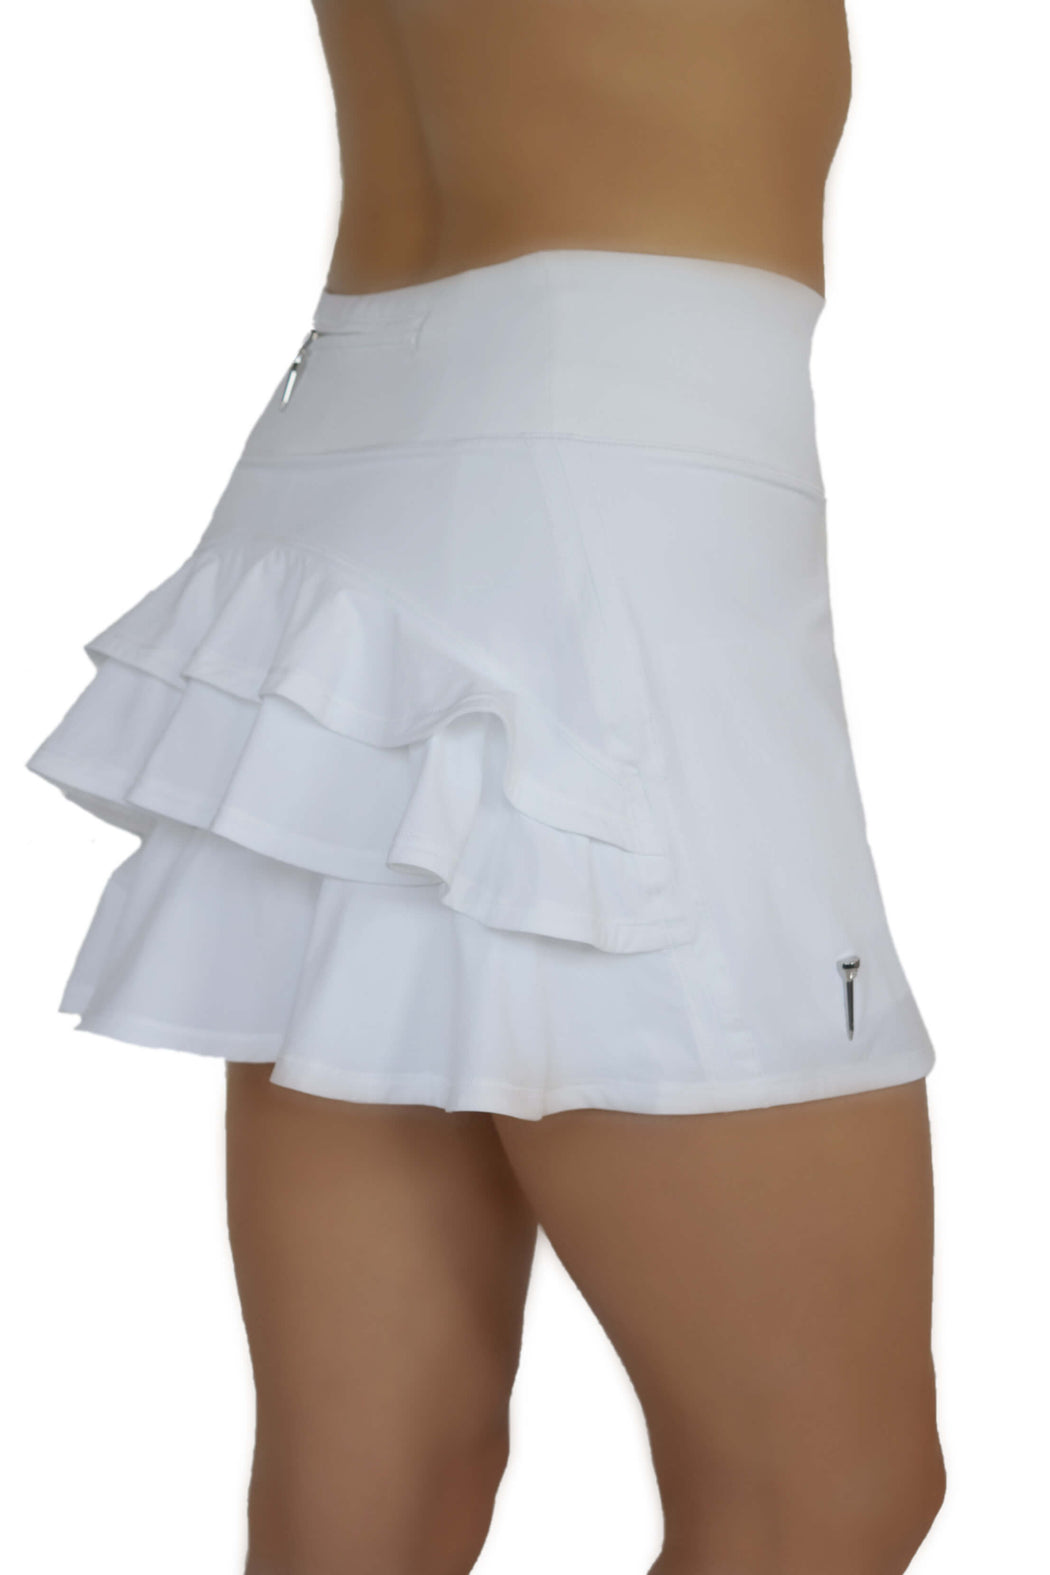 NEW! Ruffle Butt Golf Skirt - White - FlirTee Golf